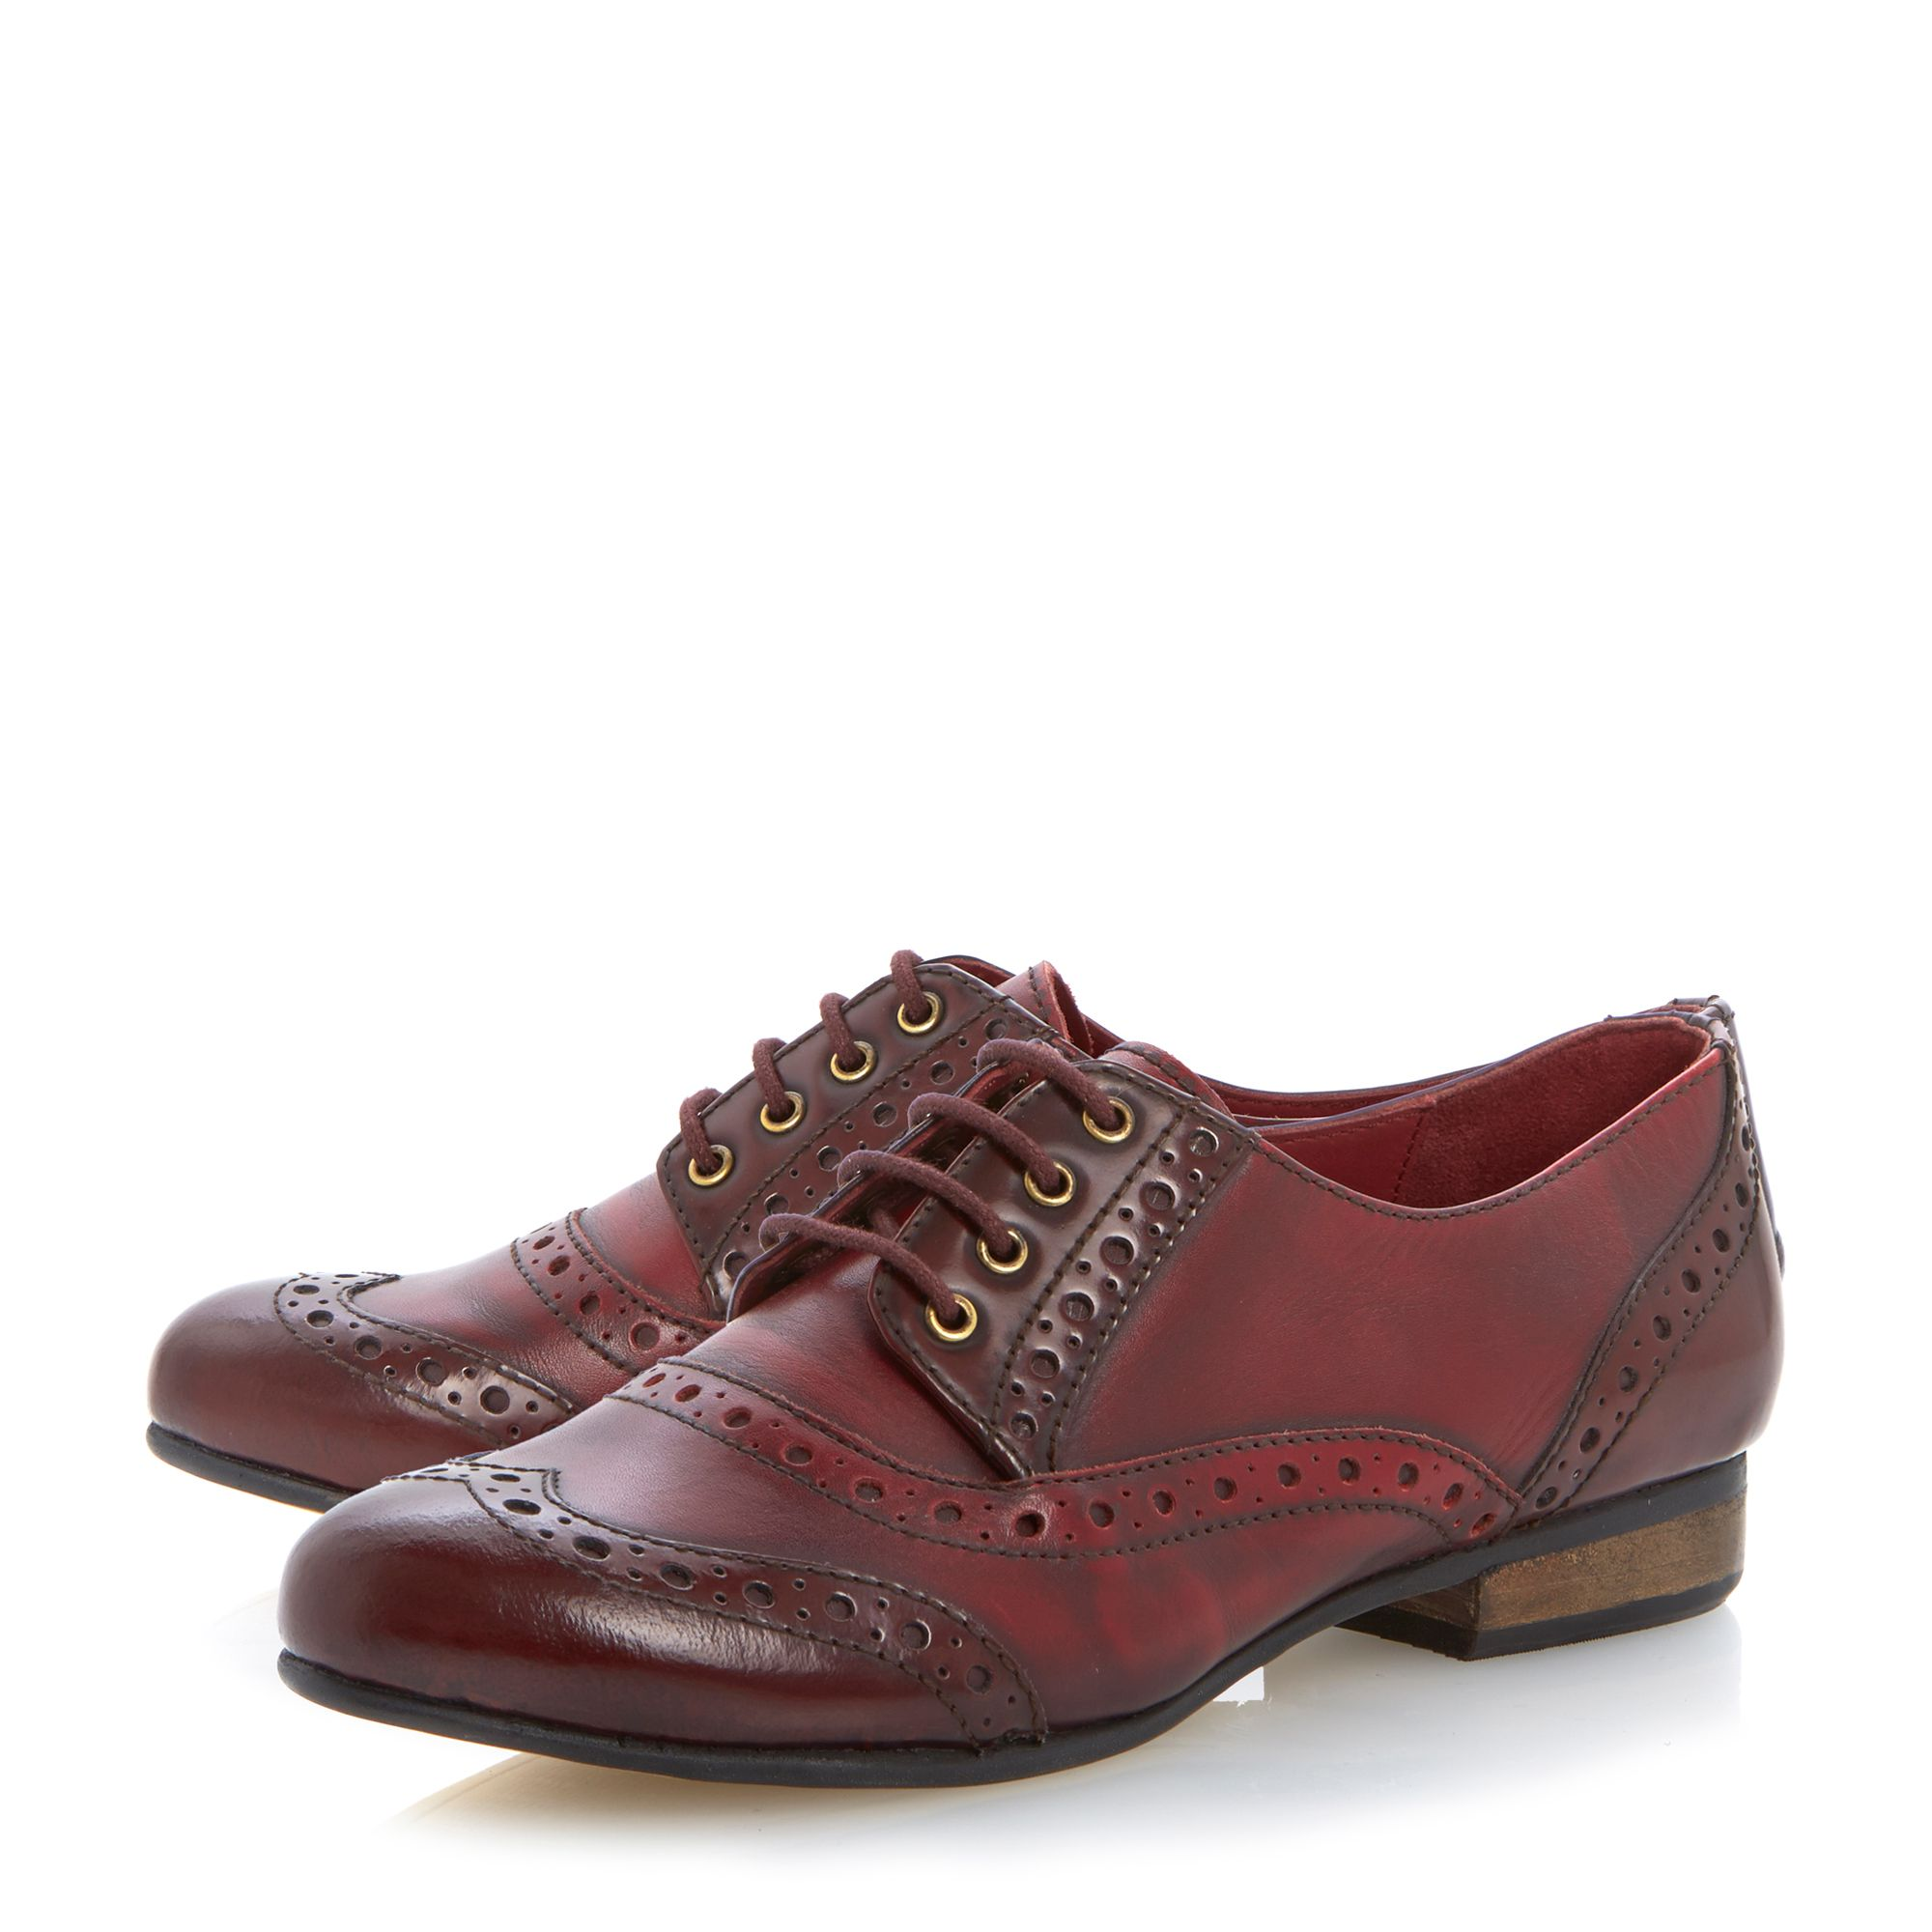 Linfred leather lace up brogues